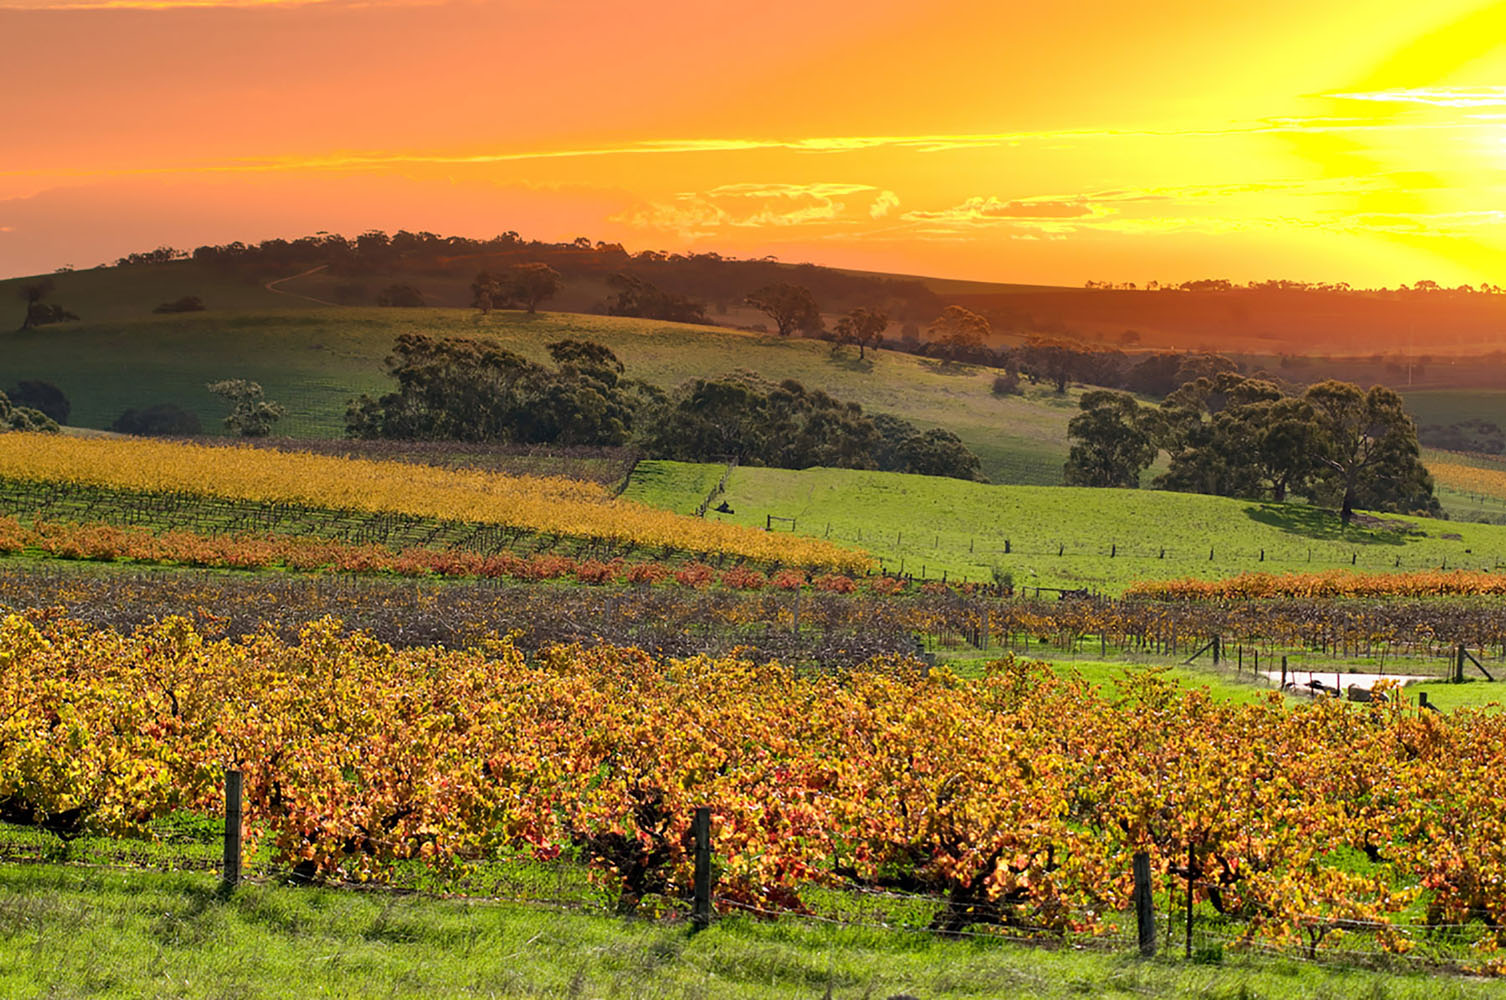 Sunset in the Barossa Valley of Australia's winelands.